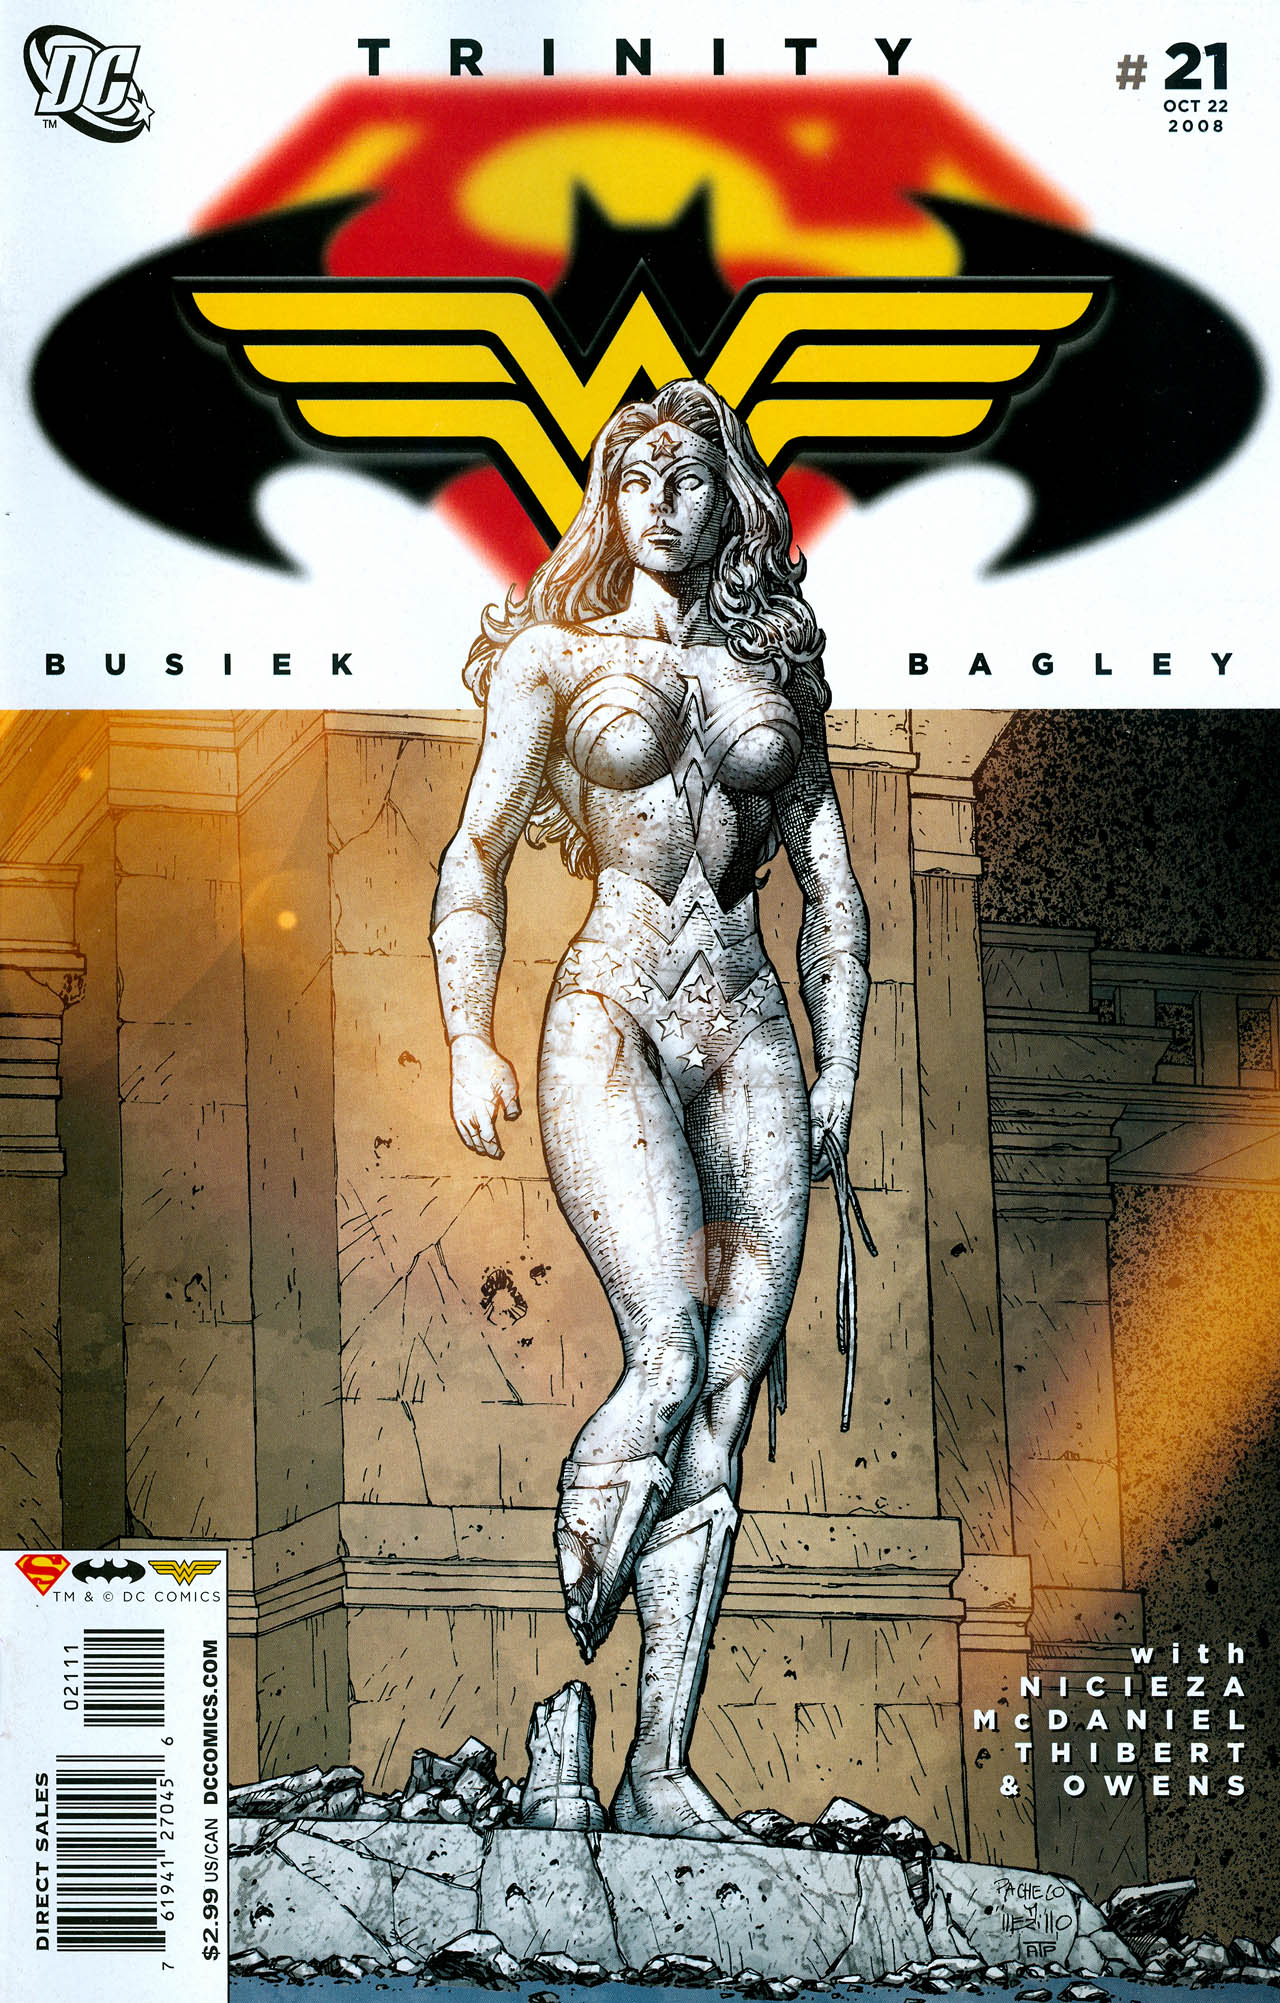 Read online Trinity (2008) comic -  Issue #21 - 1